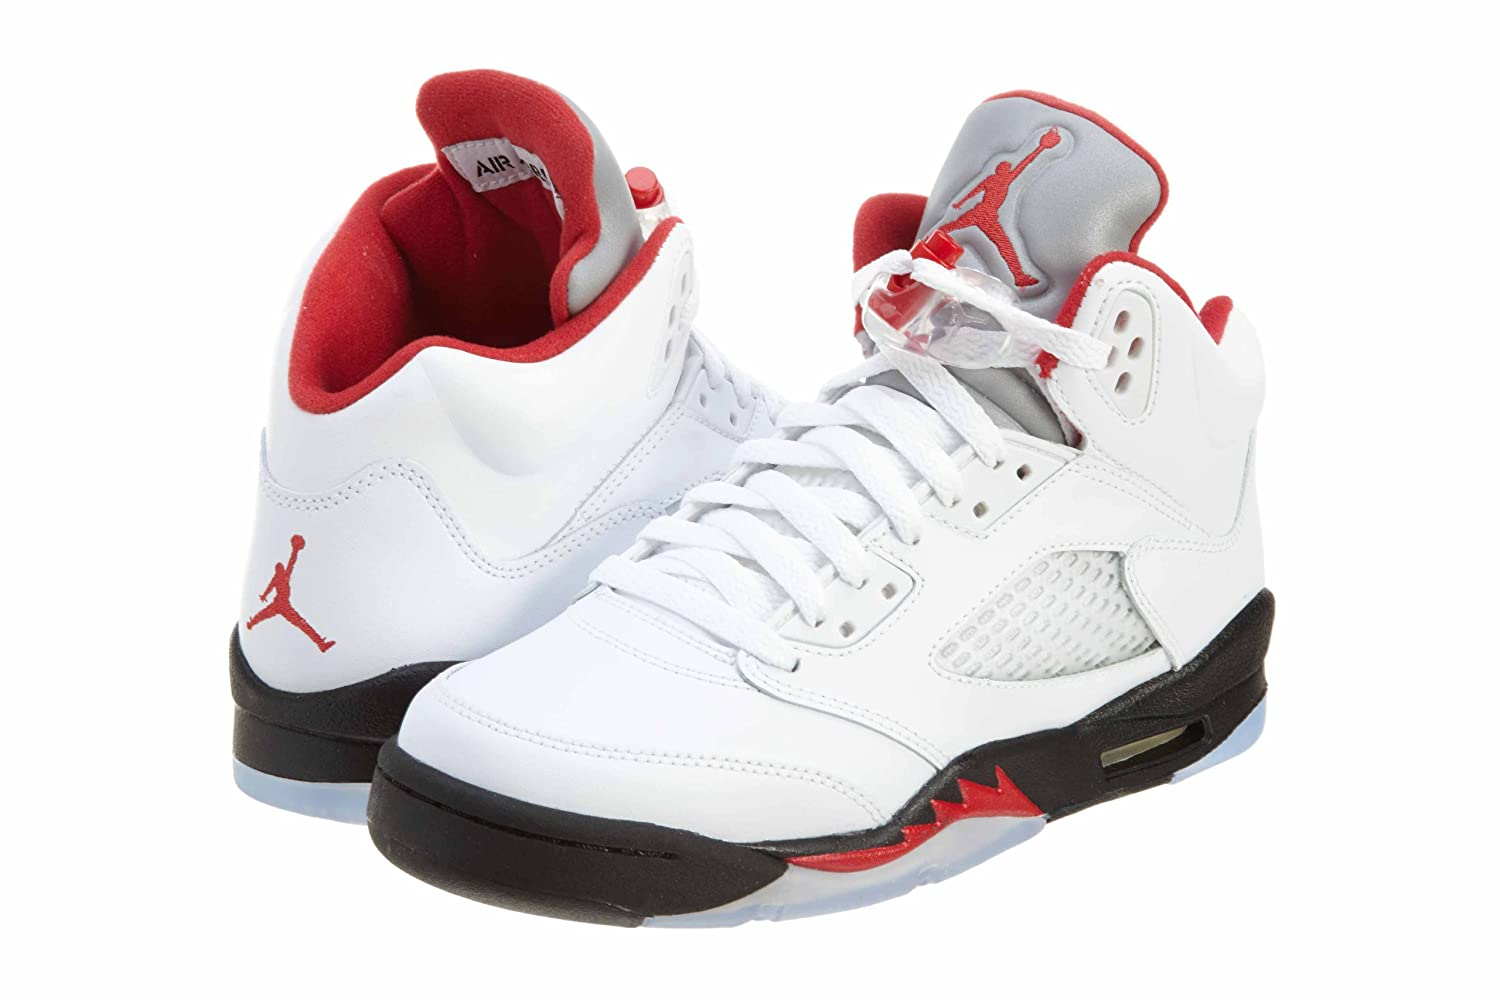 Shop at Champs Sports for Kids Jordan shoes, apparel, and accessories. Apparel and footwear in various colors & sizes. Free Shipping on select items.